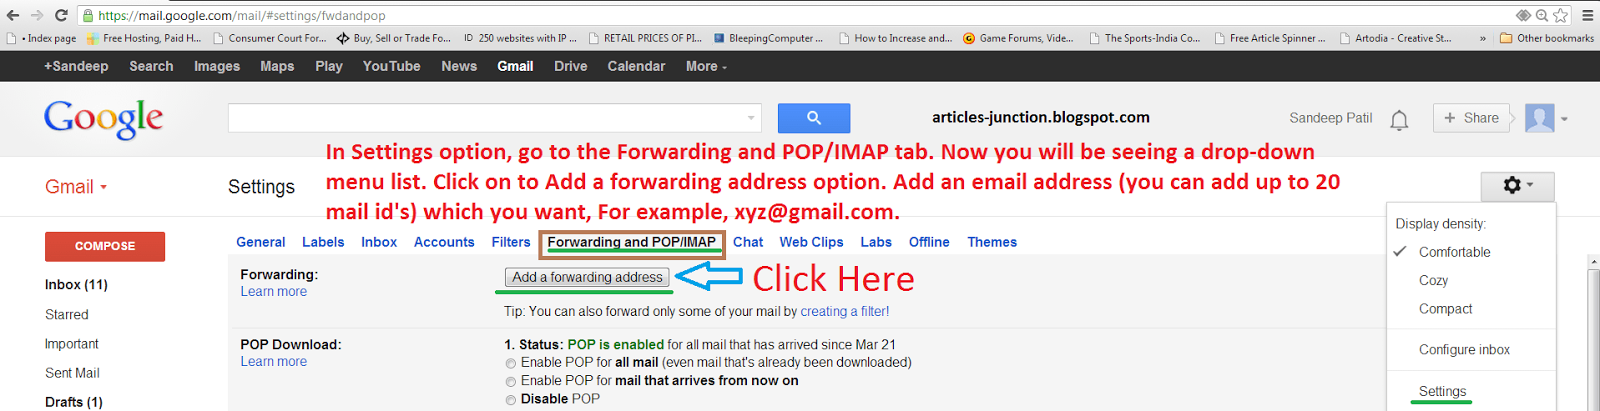 Forwarding and POP IMAP Tab in Gmail